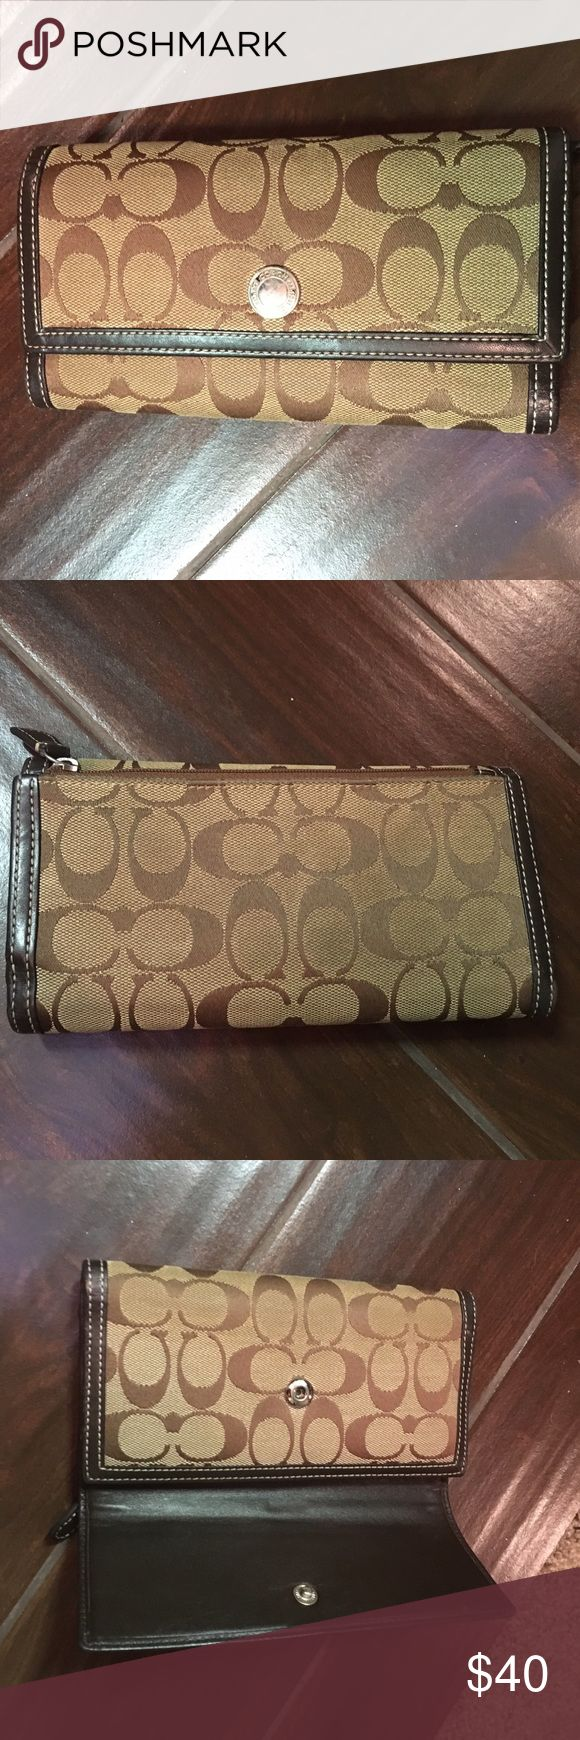 Coach wallet brown with dark brown leather trim Coach wallet. Originally a checkbook wallet but the check book is missing. Exterior shows wear but leather inside is still in great condition. I have not tried cleaning it. Coach Bags Wallets